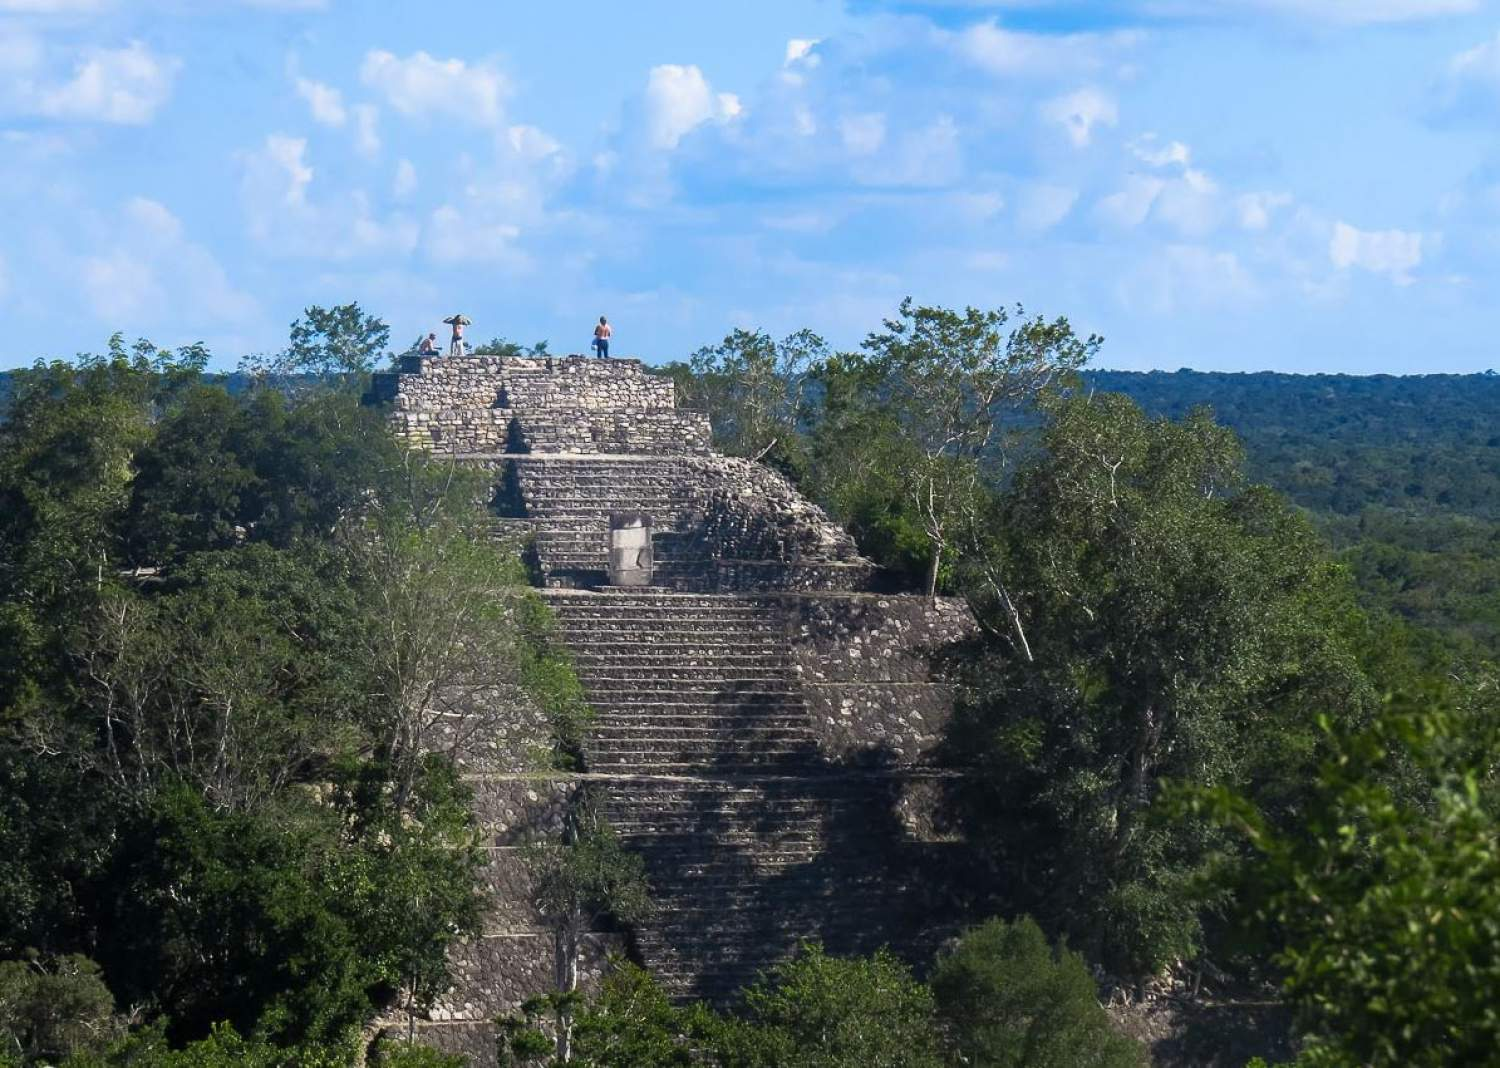 On top of Calakmul Pyramid, Mayan temple